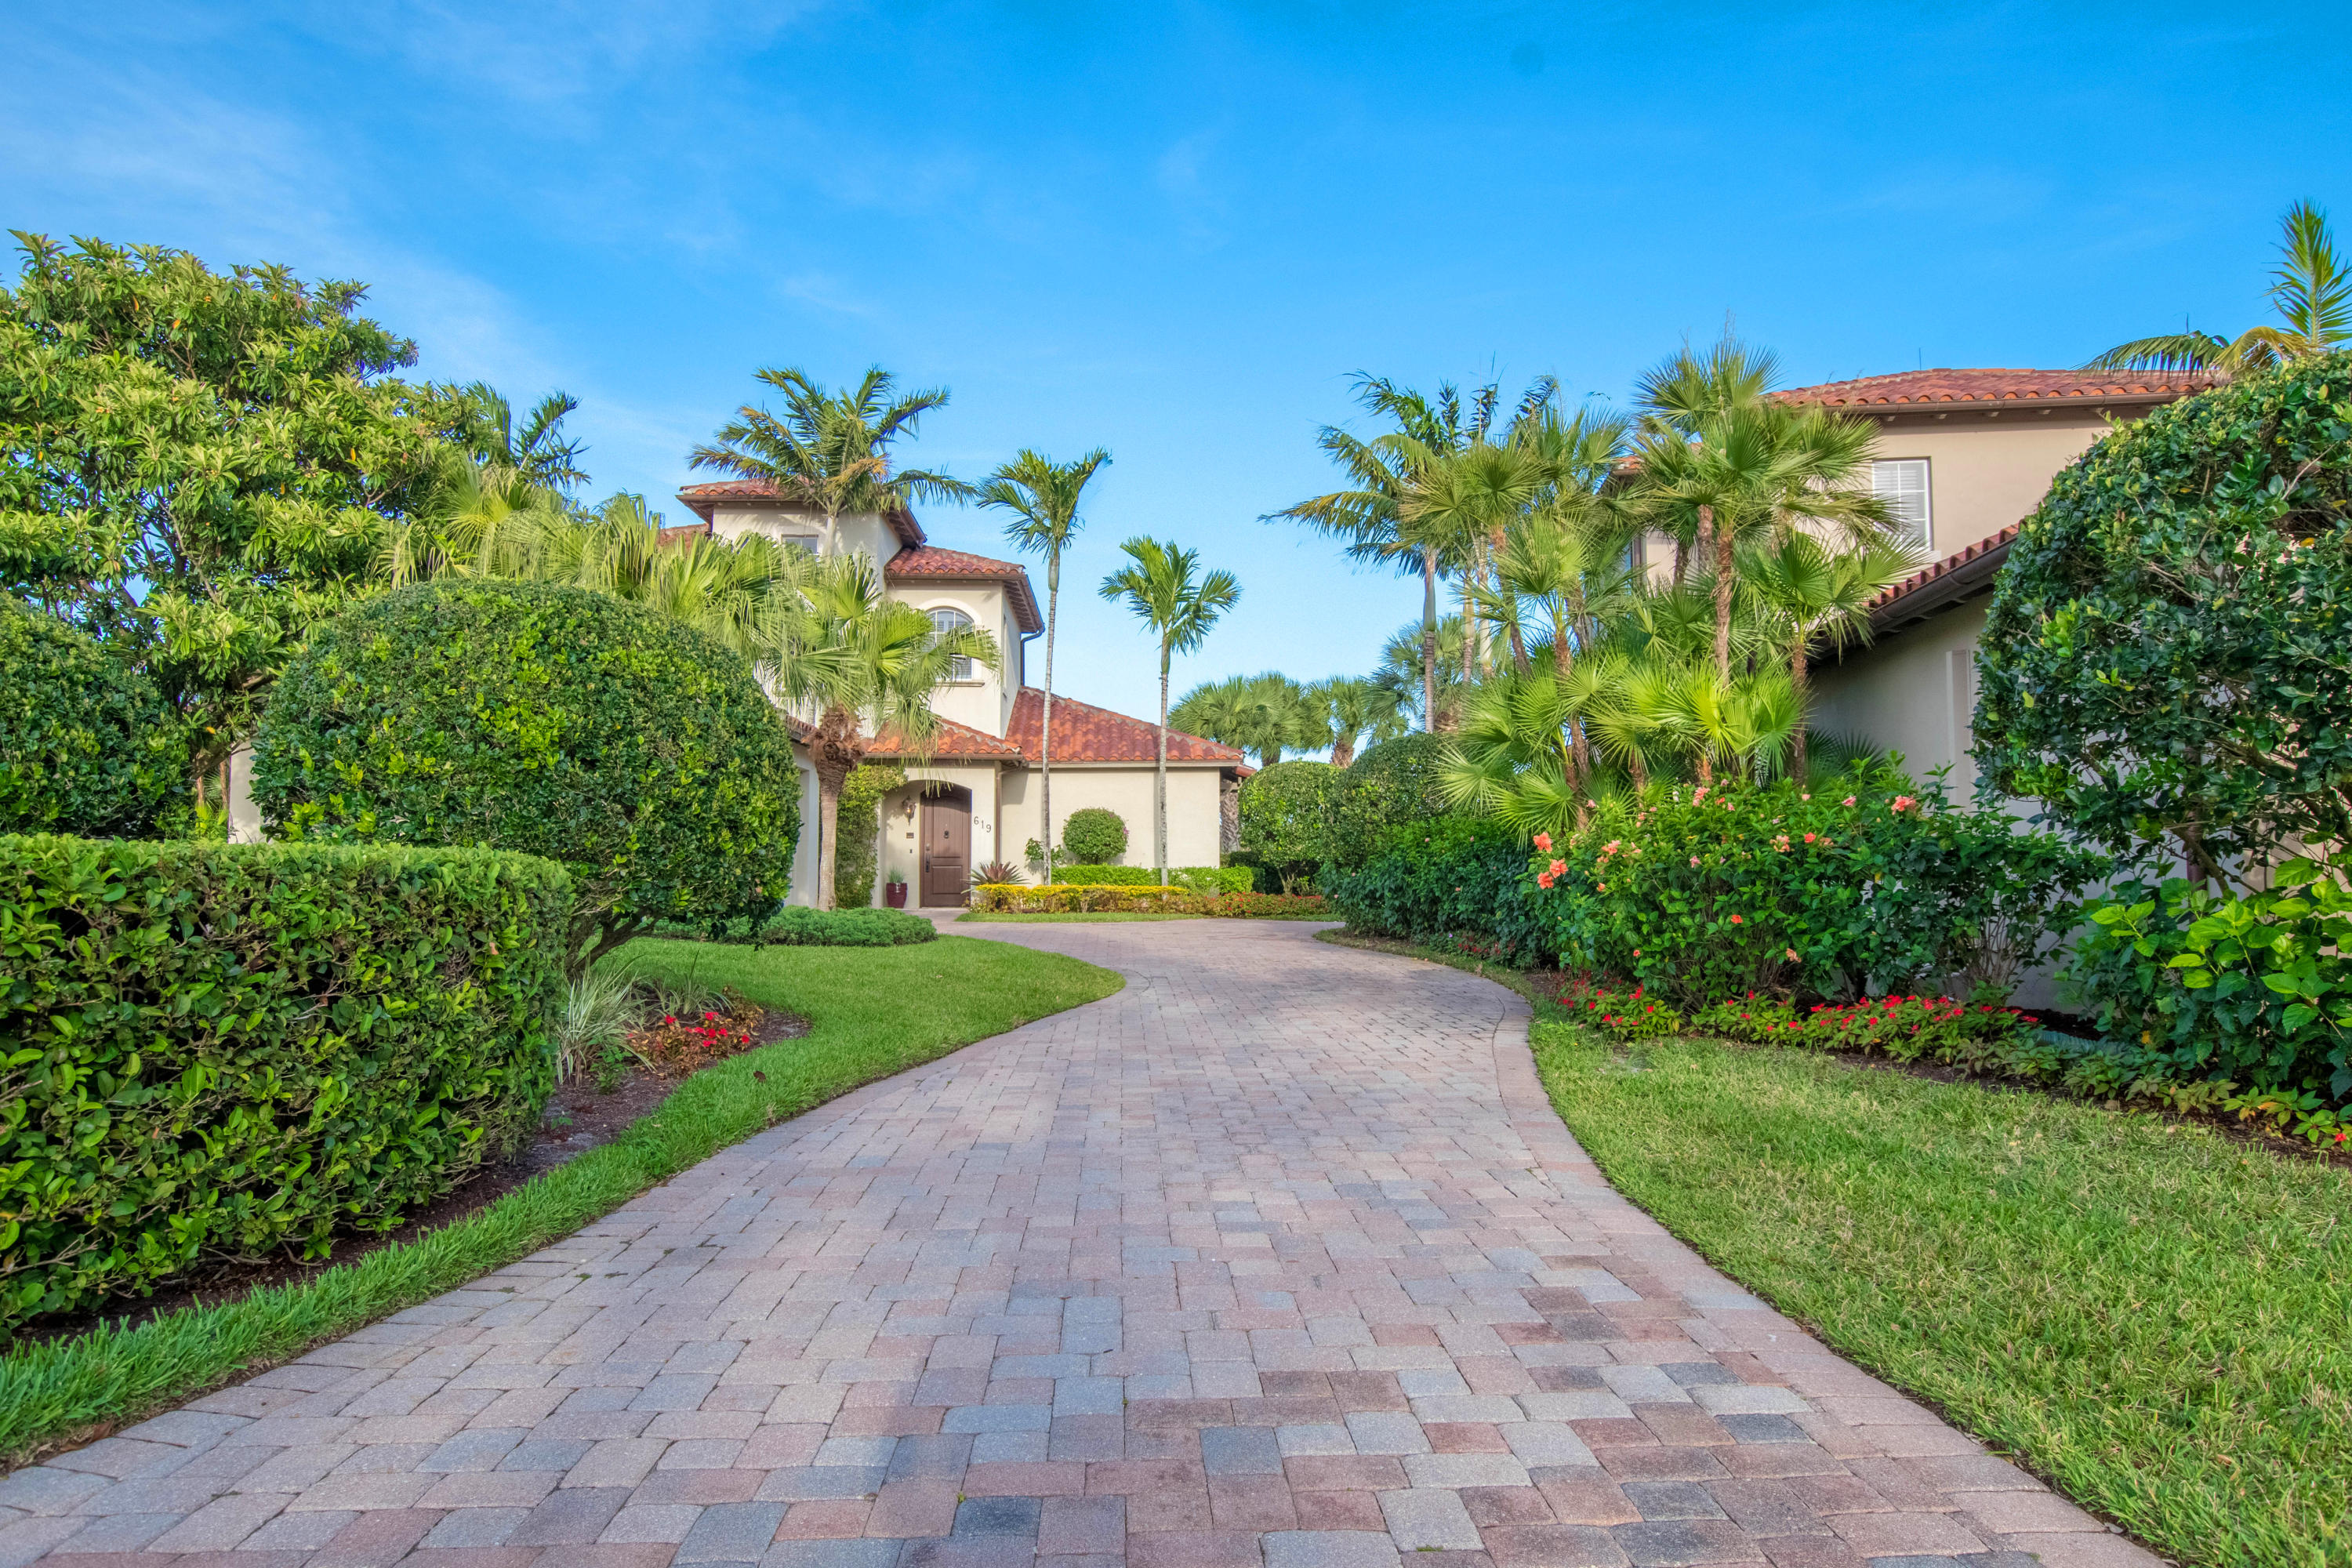 619 White Pelican Way, Jupiter, Florida 33477, 4 Bedrooms Bedrooms, ,4.1 BathroomsBathrooms,A,Single family,White Pelican,RX-10458699